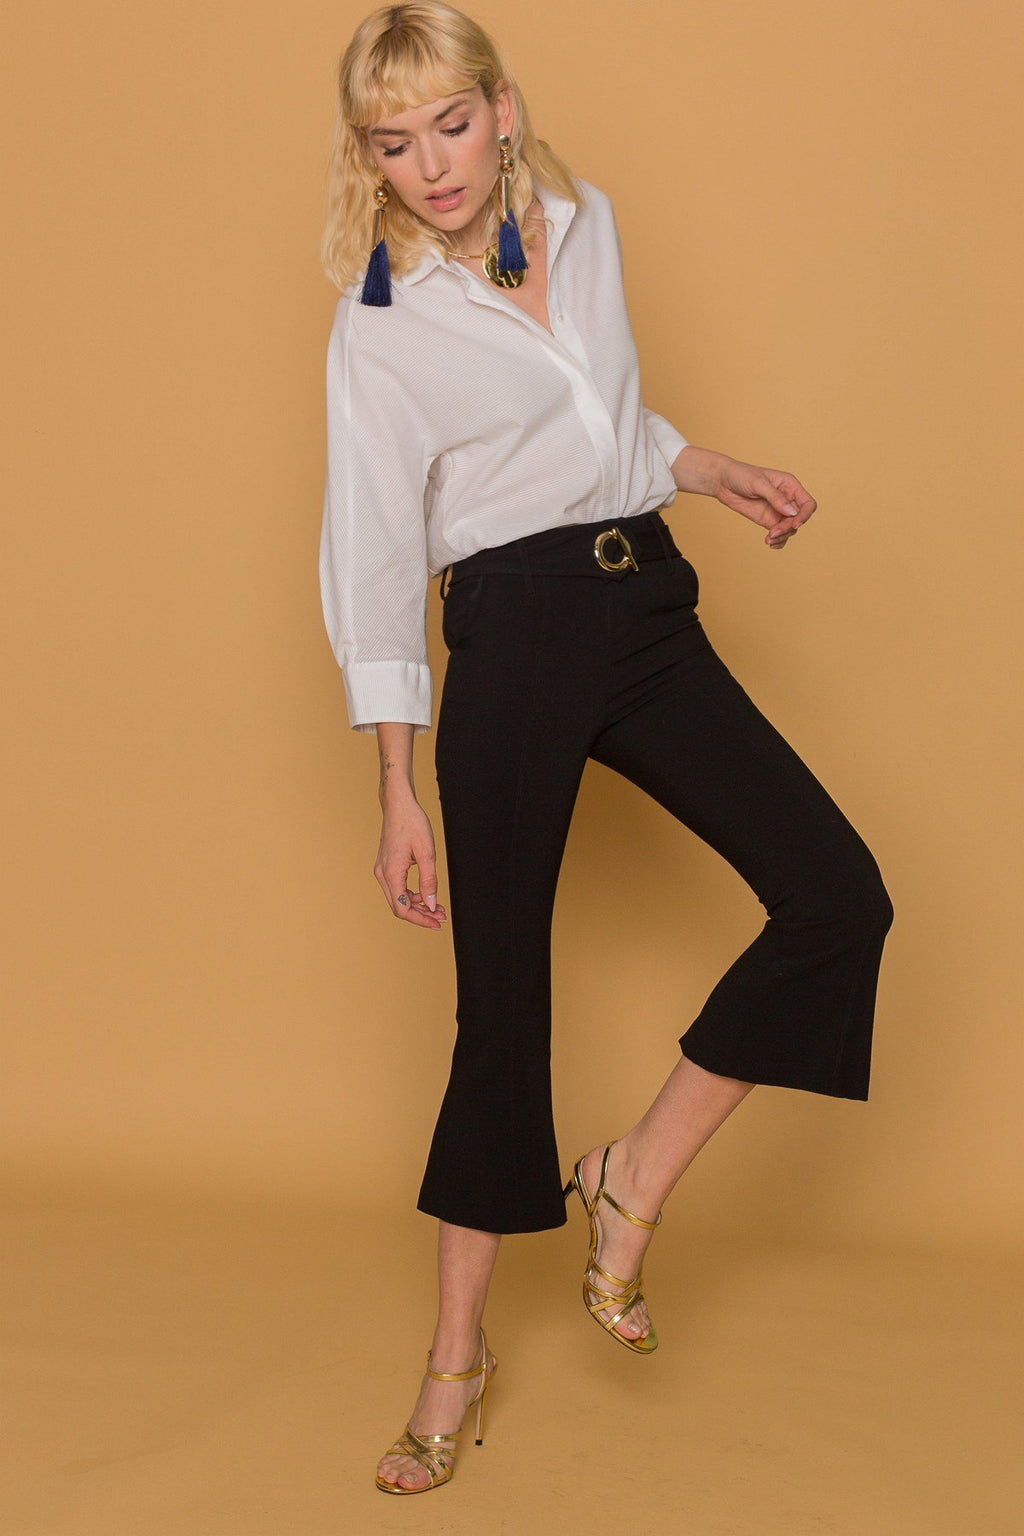 The 'O' Cropped Pants